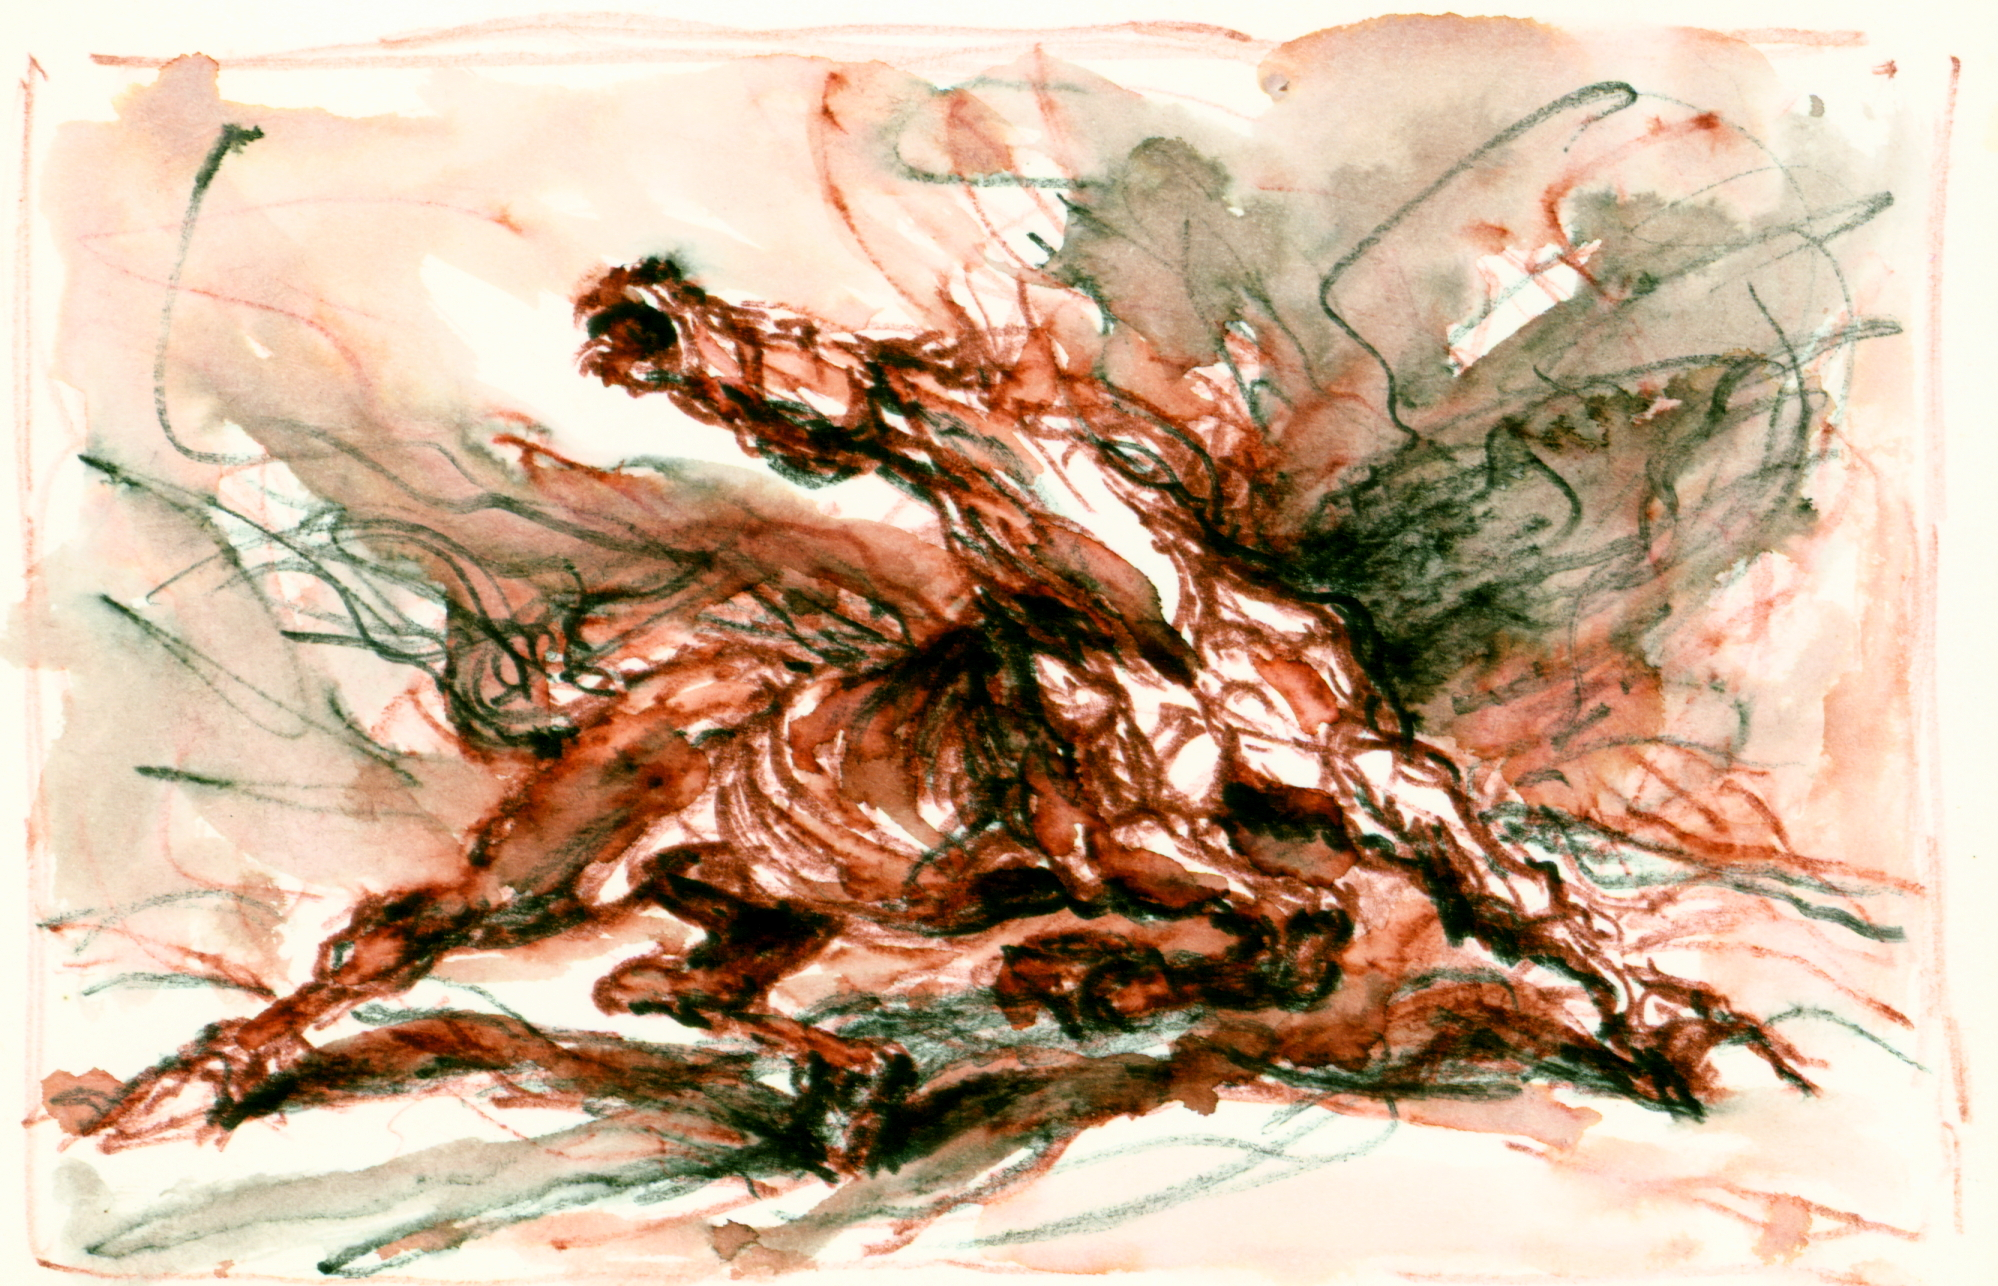 """<font size='3' font color='gray'><p id=""""myP"""" style=""""text-transform:capitalize""""><font size='3' font color='gray'>HORSE in Red Ink  (Pen & ink, wash, 4.50 x 6.25) c. 1980's</p>"""